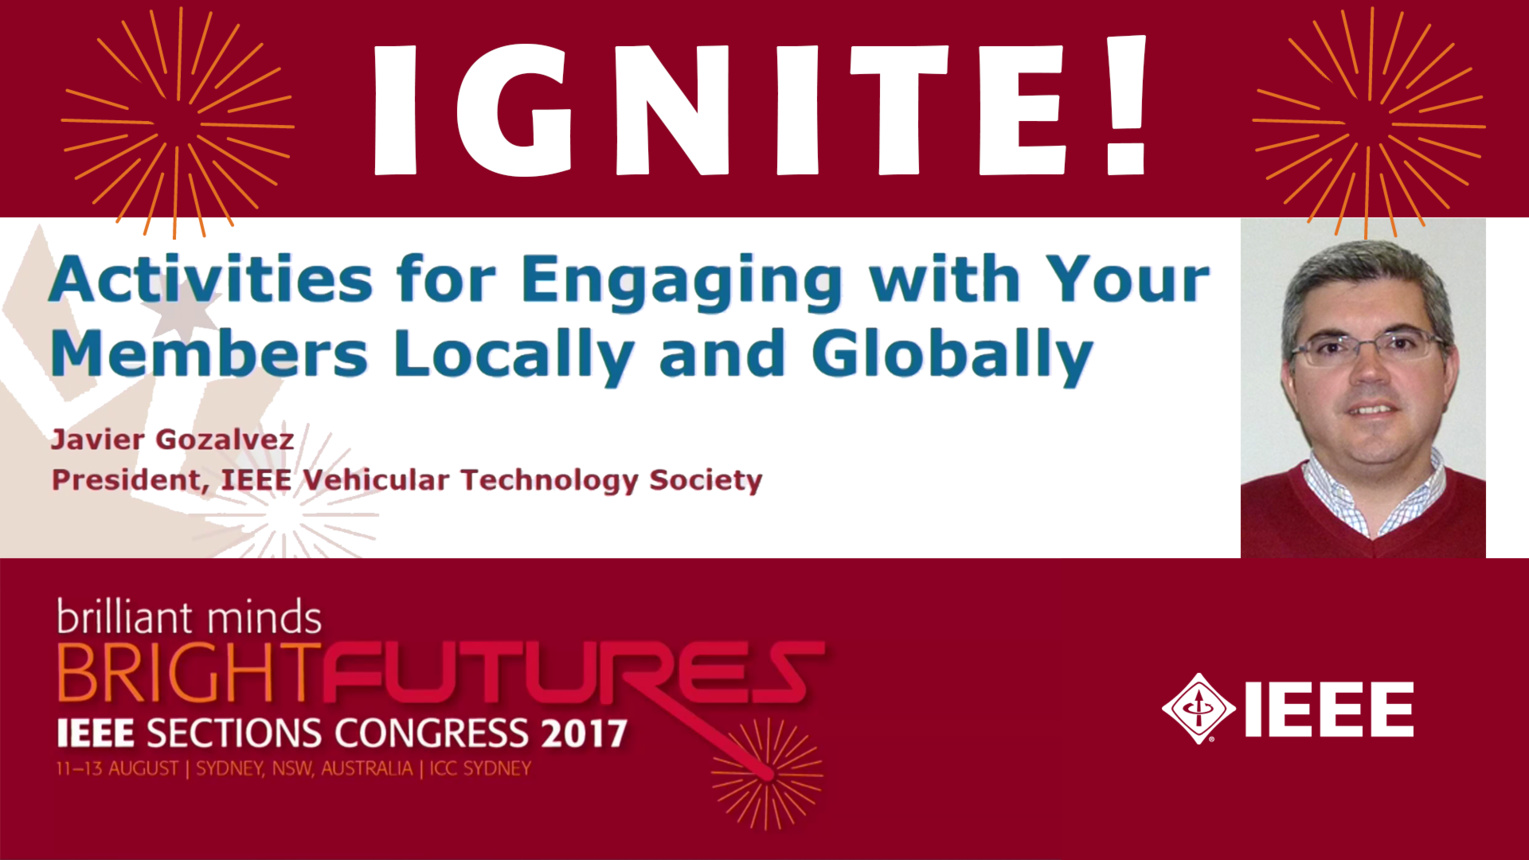 Activities for Engaging with Your Members Locally and Globally - Javier Gozalvez - Ignite: Sections Congress 2017